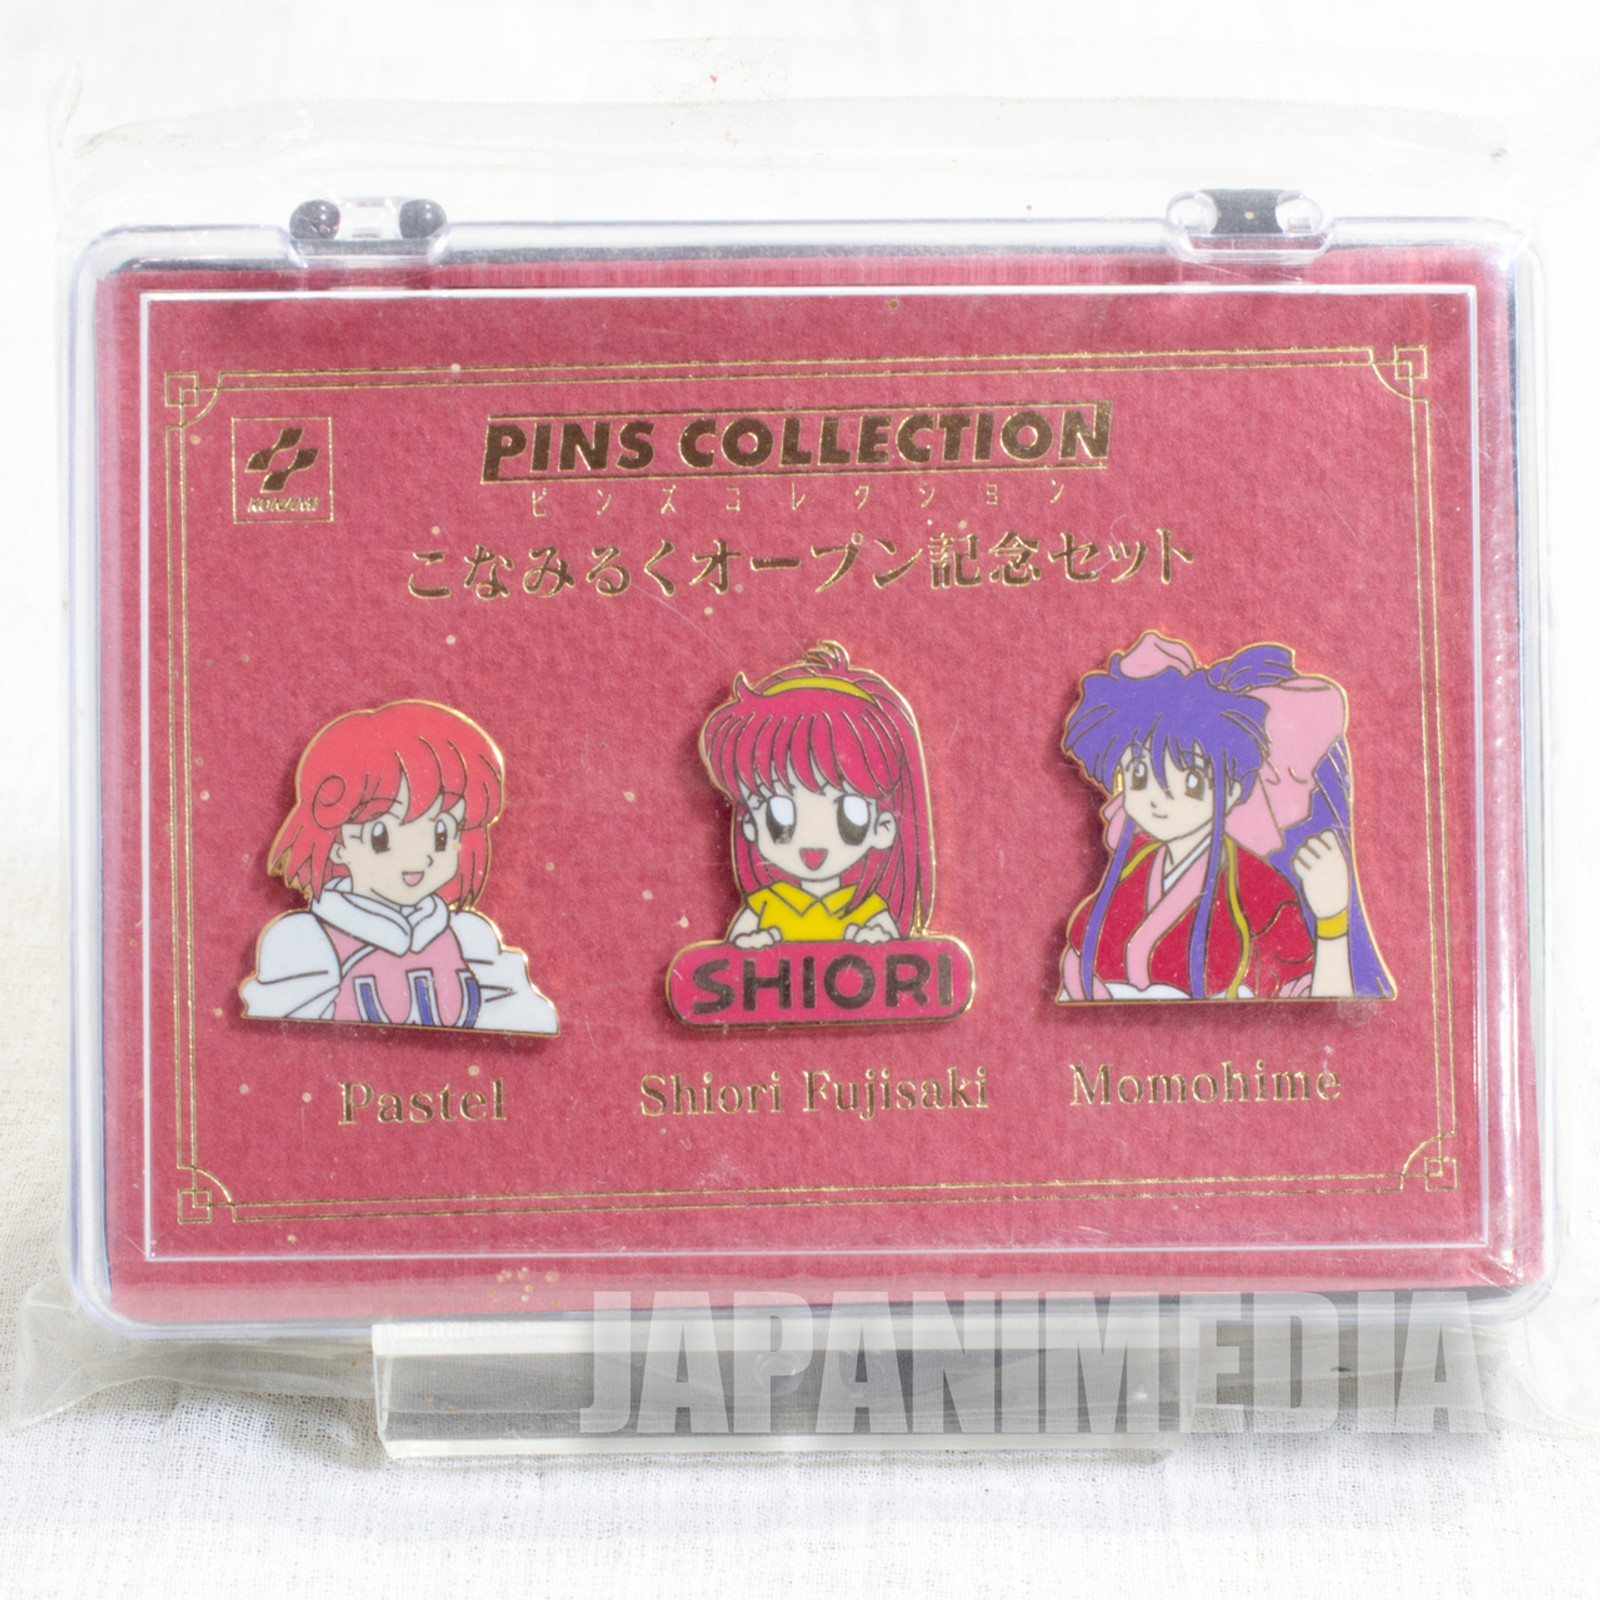 KONAMI Pins Collection Set Pastel Shiori Momohime Konamiruku JAPAN GAME